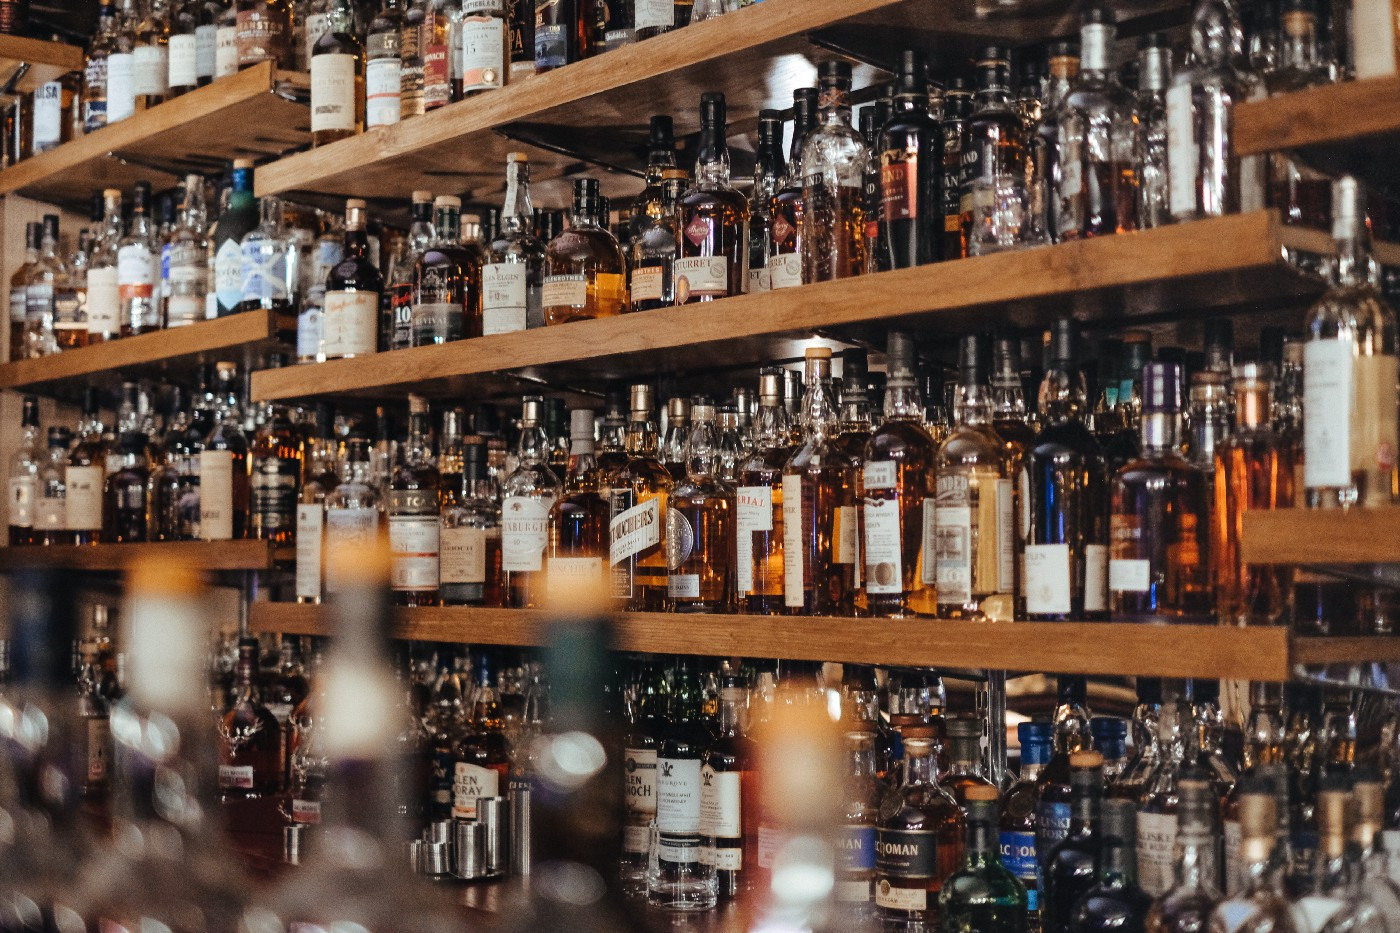 A bar whose shelves are filled with bourbon.